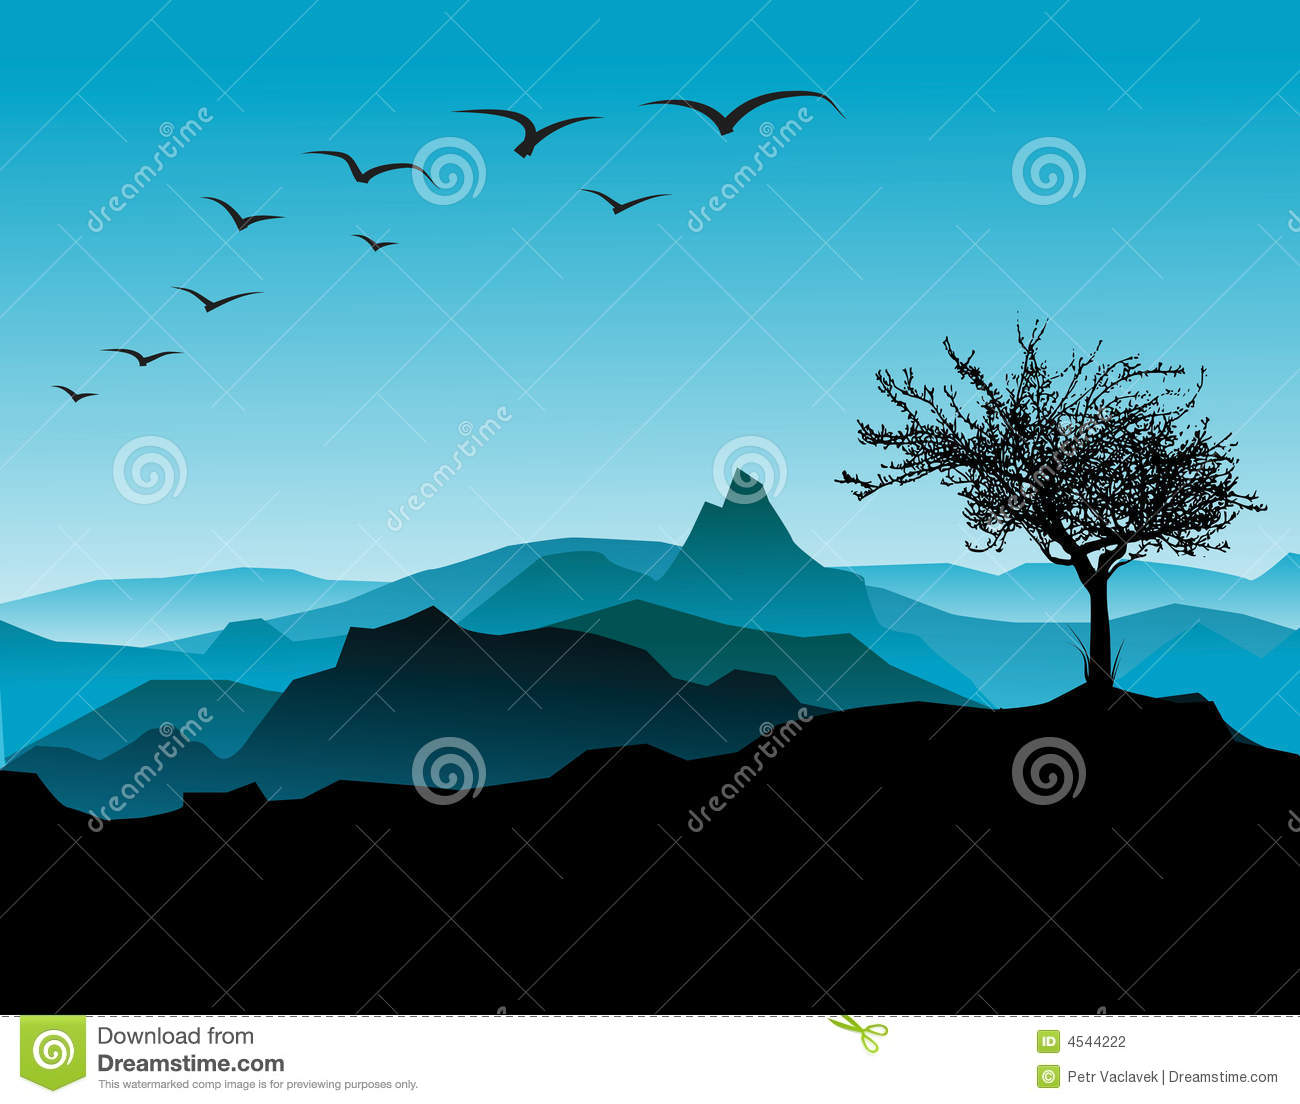 Landscape Silhouette Stock Photography Image 4544222